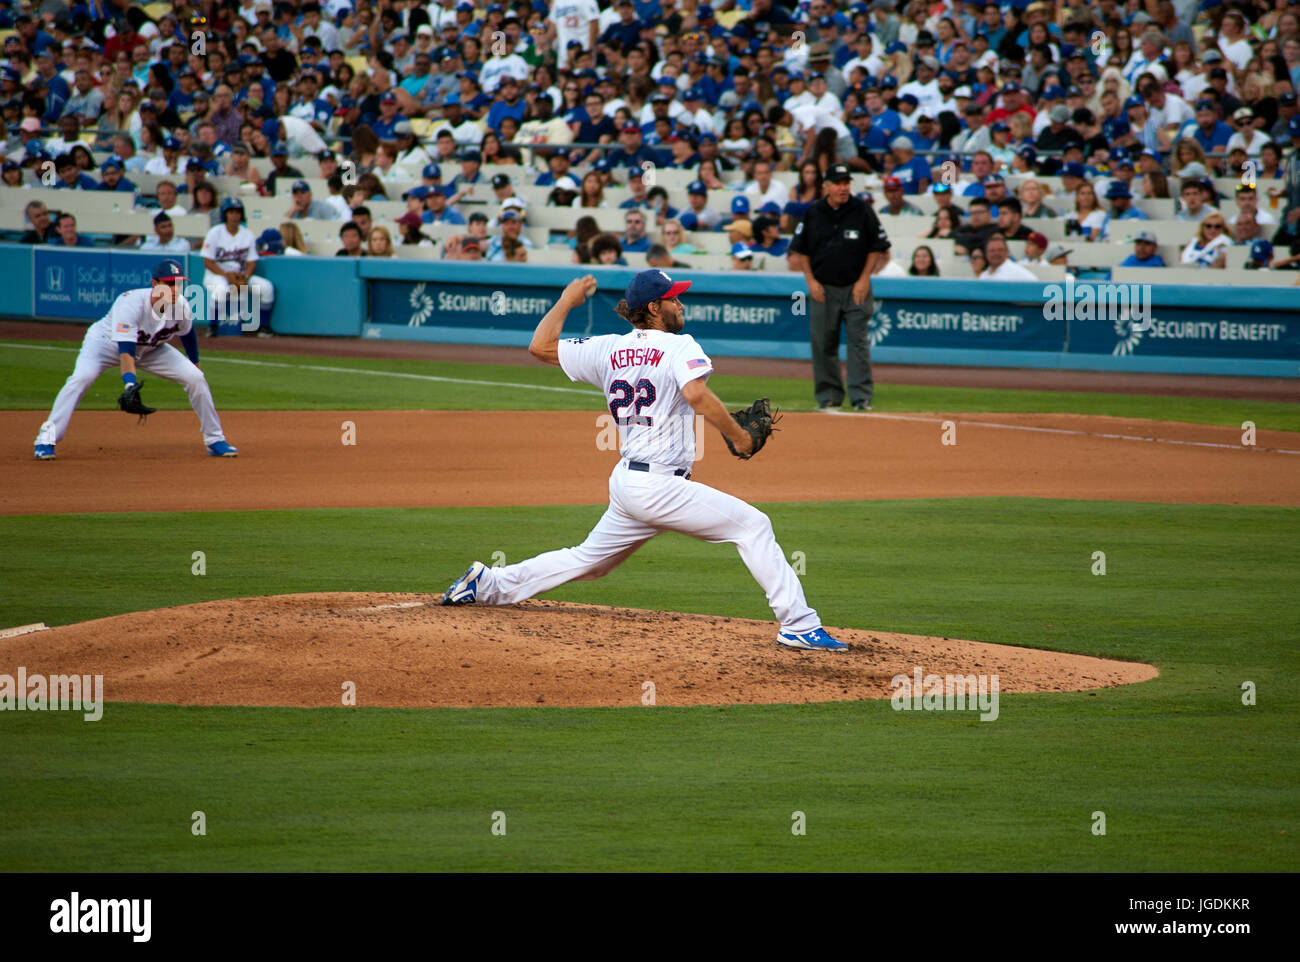 Dodger ace pitcher Clayton Kershaw with rookie first baseman Cody Bellinger looking on at dodger Stadium in Los - Stock Image